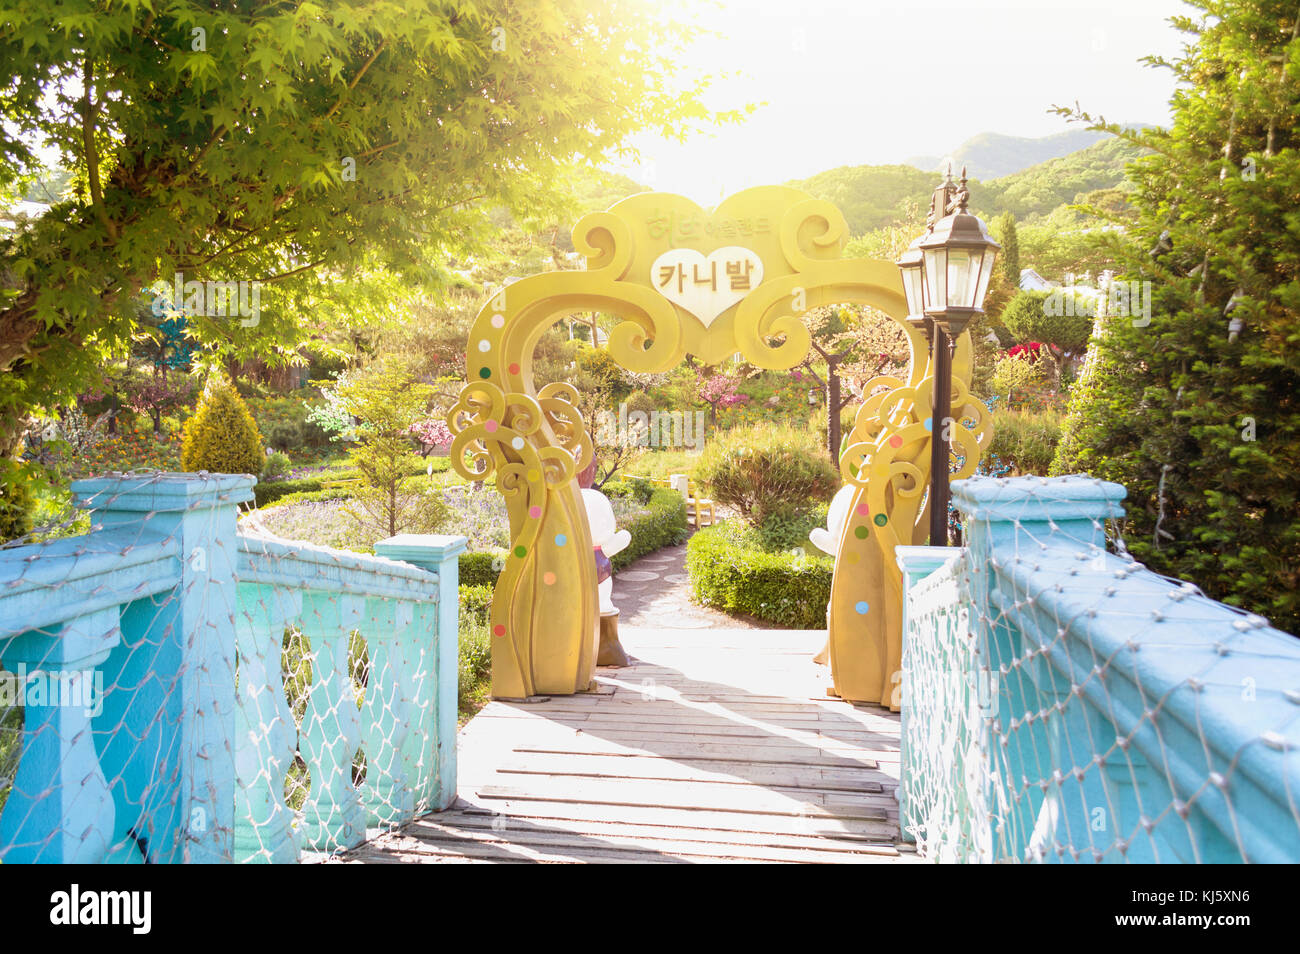 Arch in one of Her island gardens in South Korea - Stock Image